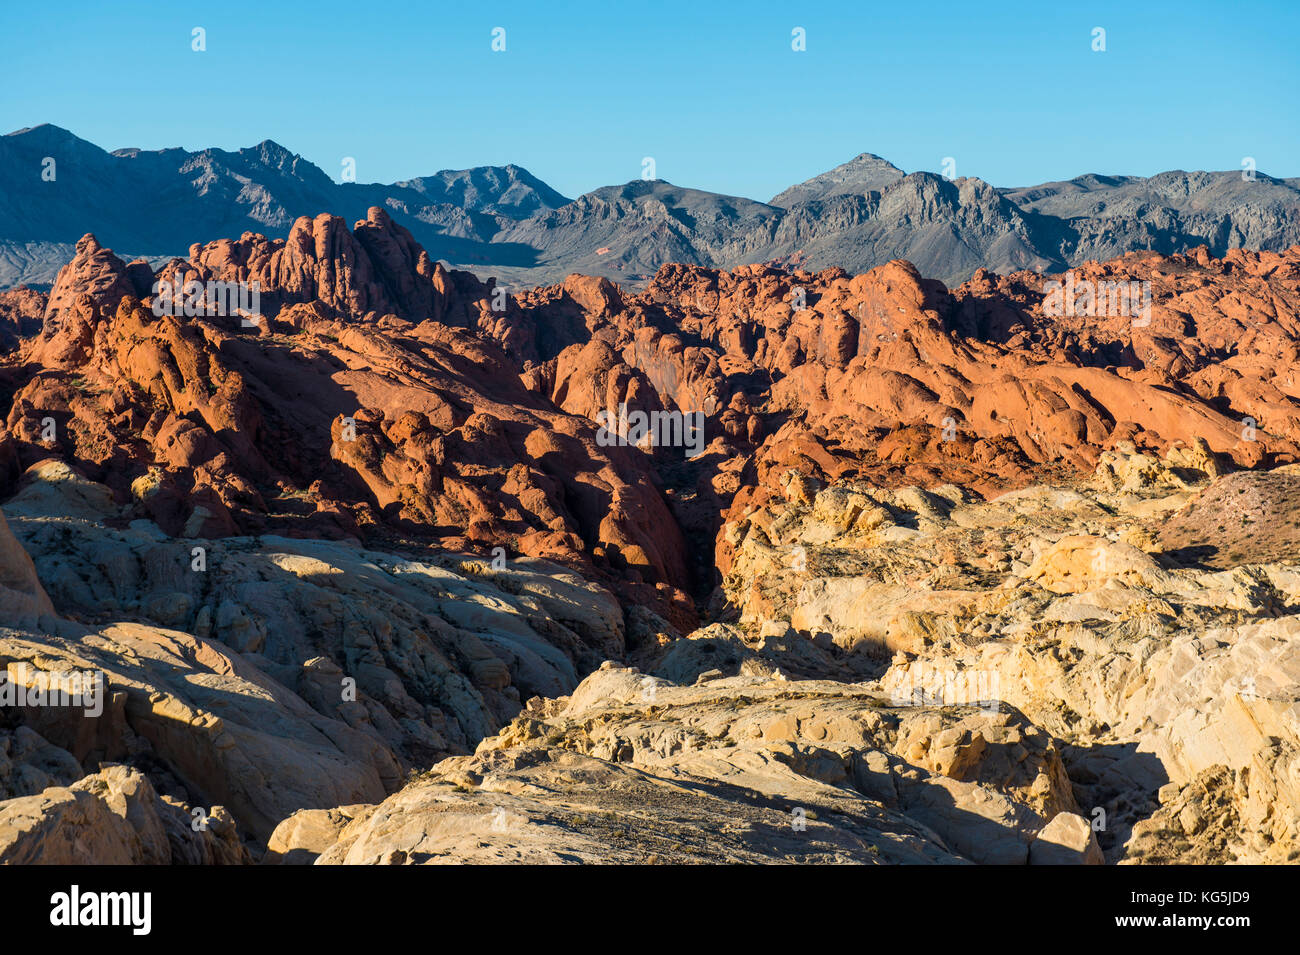 Overlook over the redrock sandstone formations in the Valley of fire, Nevada, USA - Stock Image